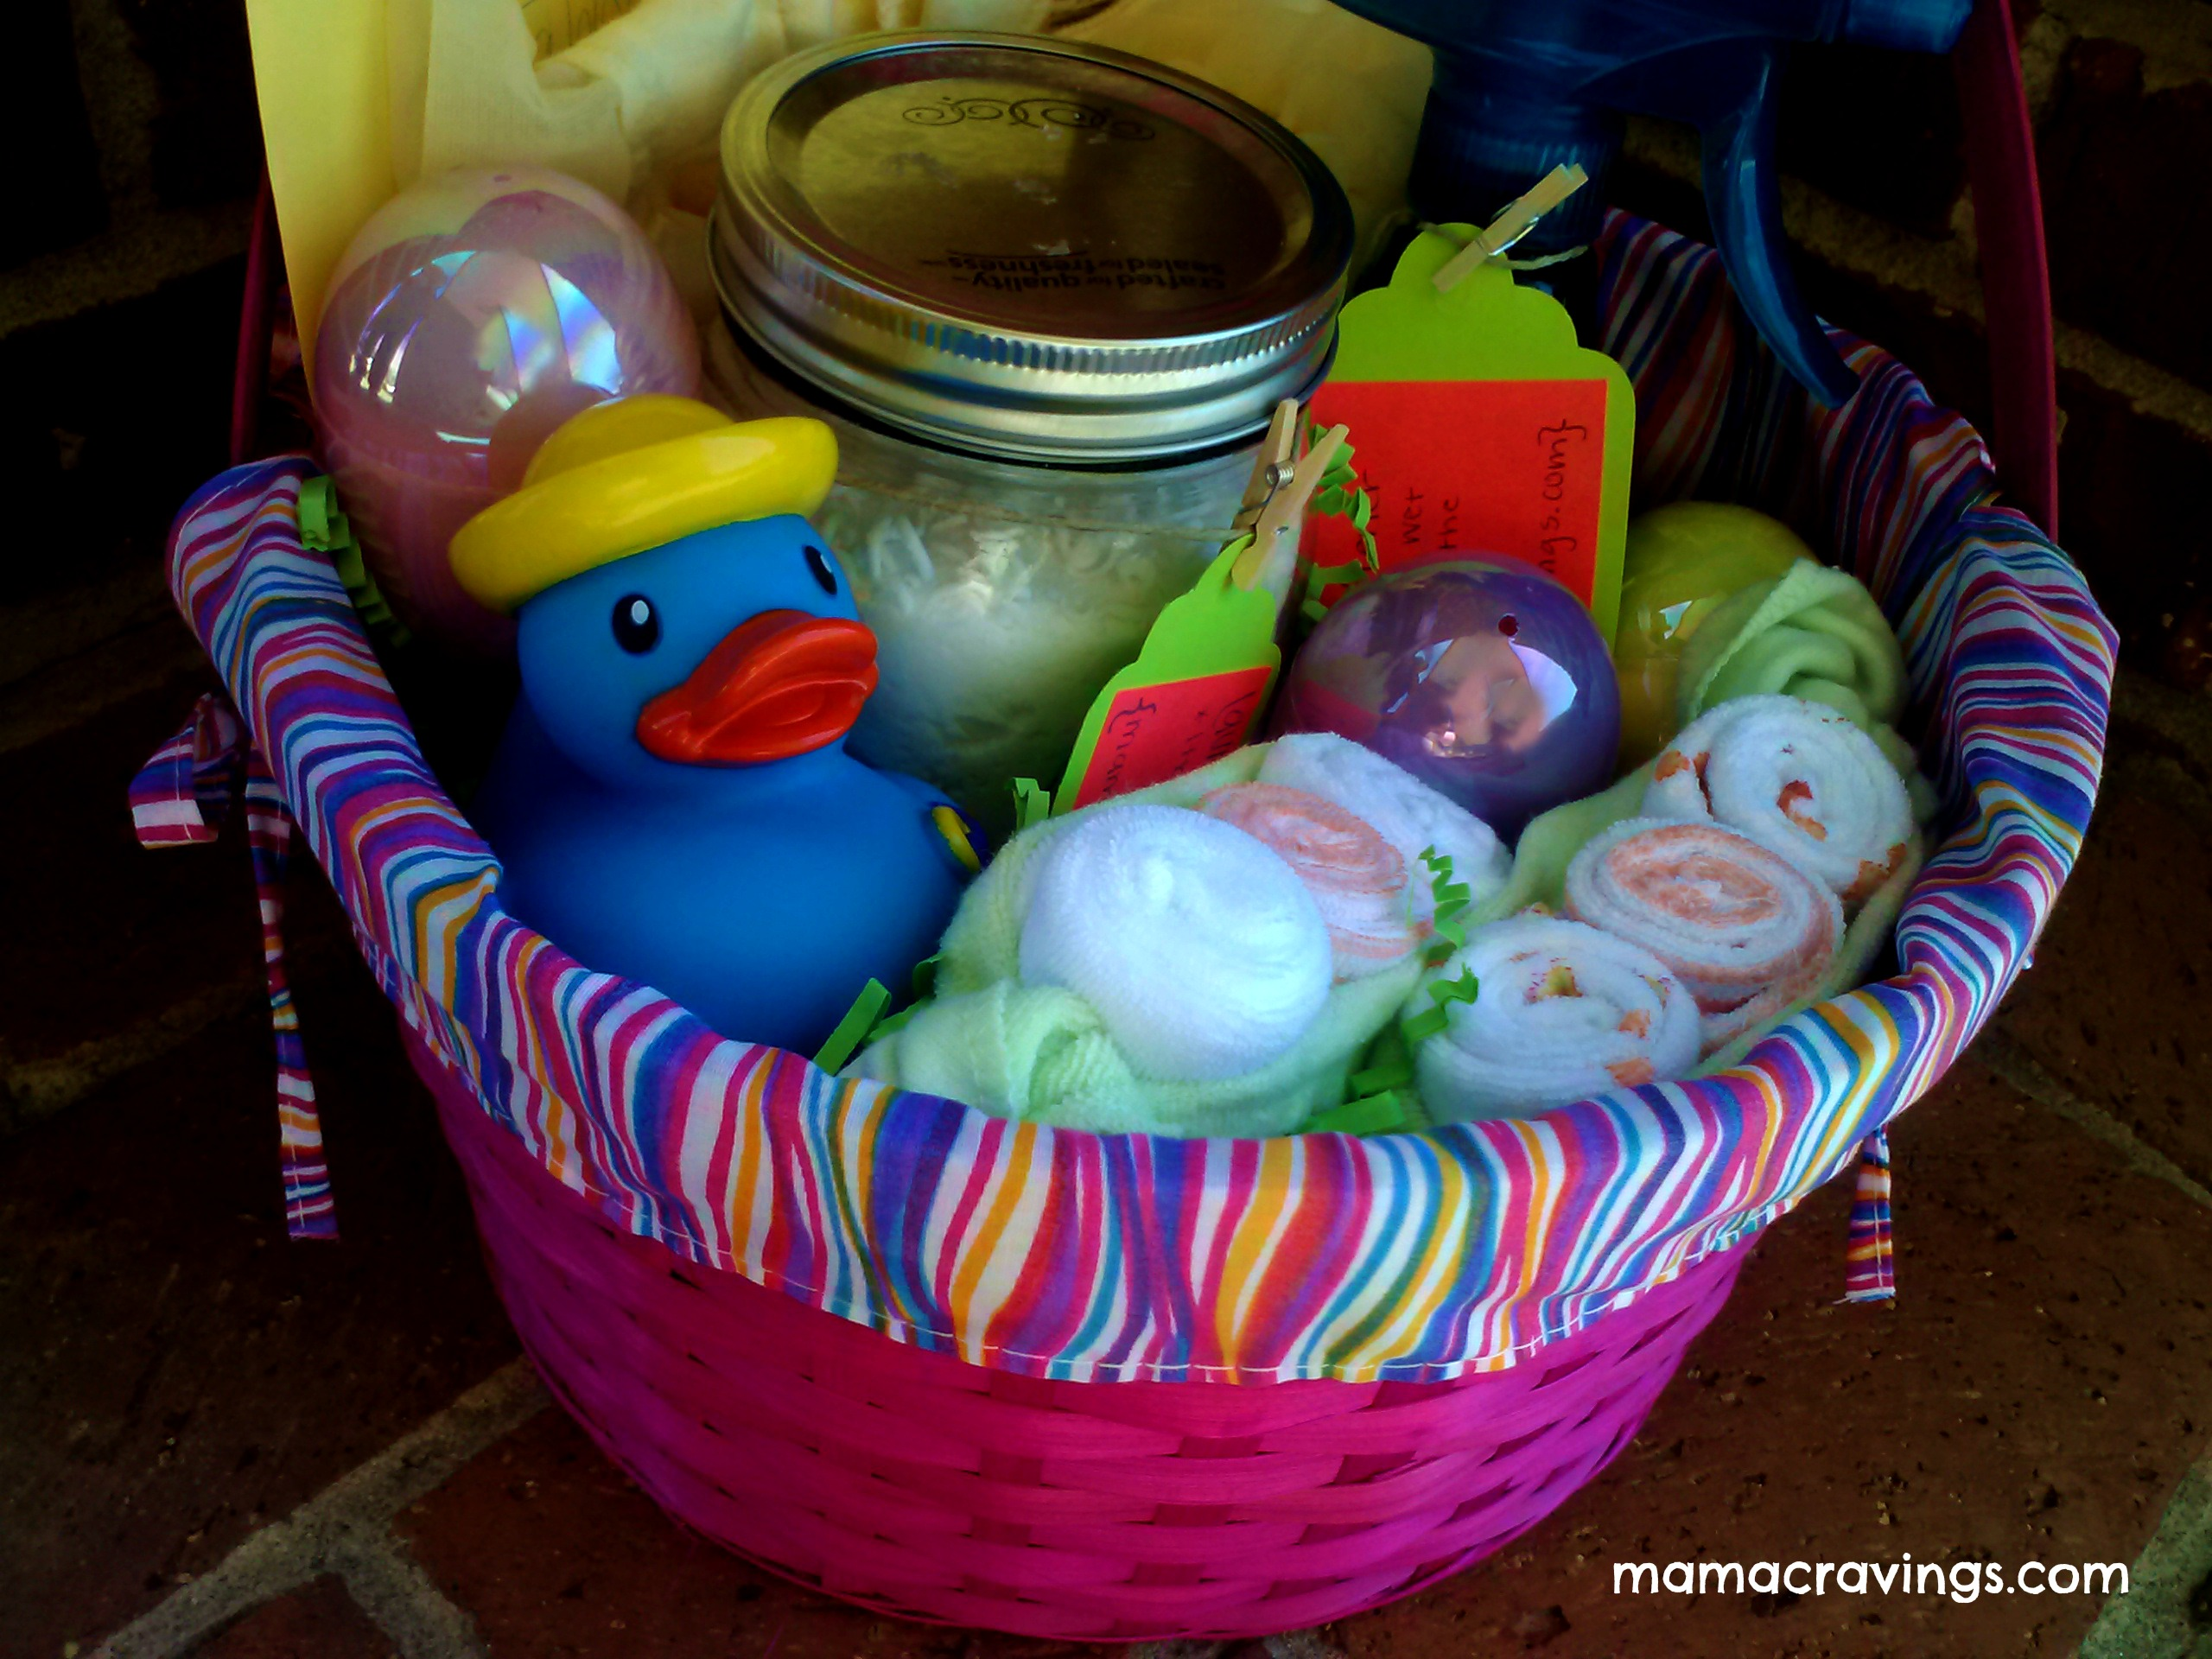 Inspiration for spring baby gift easter basket mamacravings 0316131333a negle Image collections